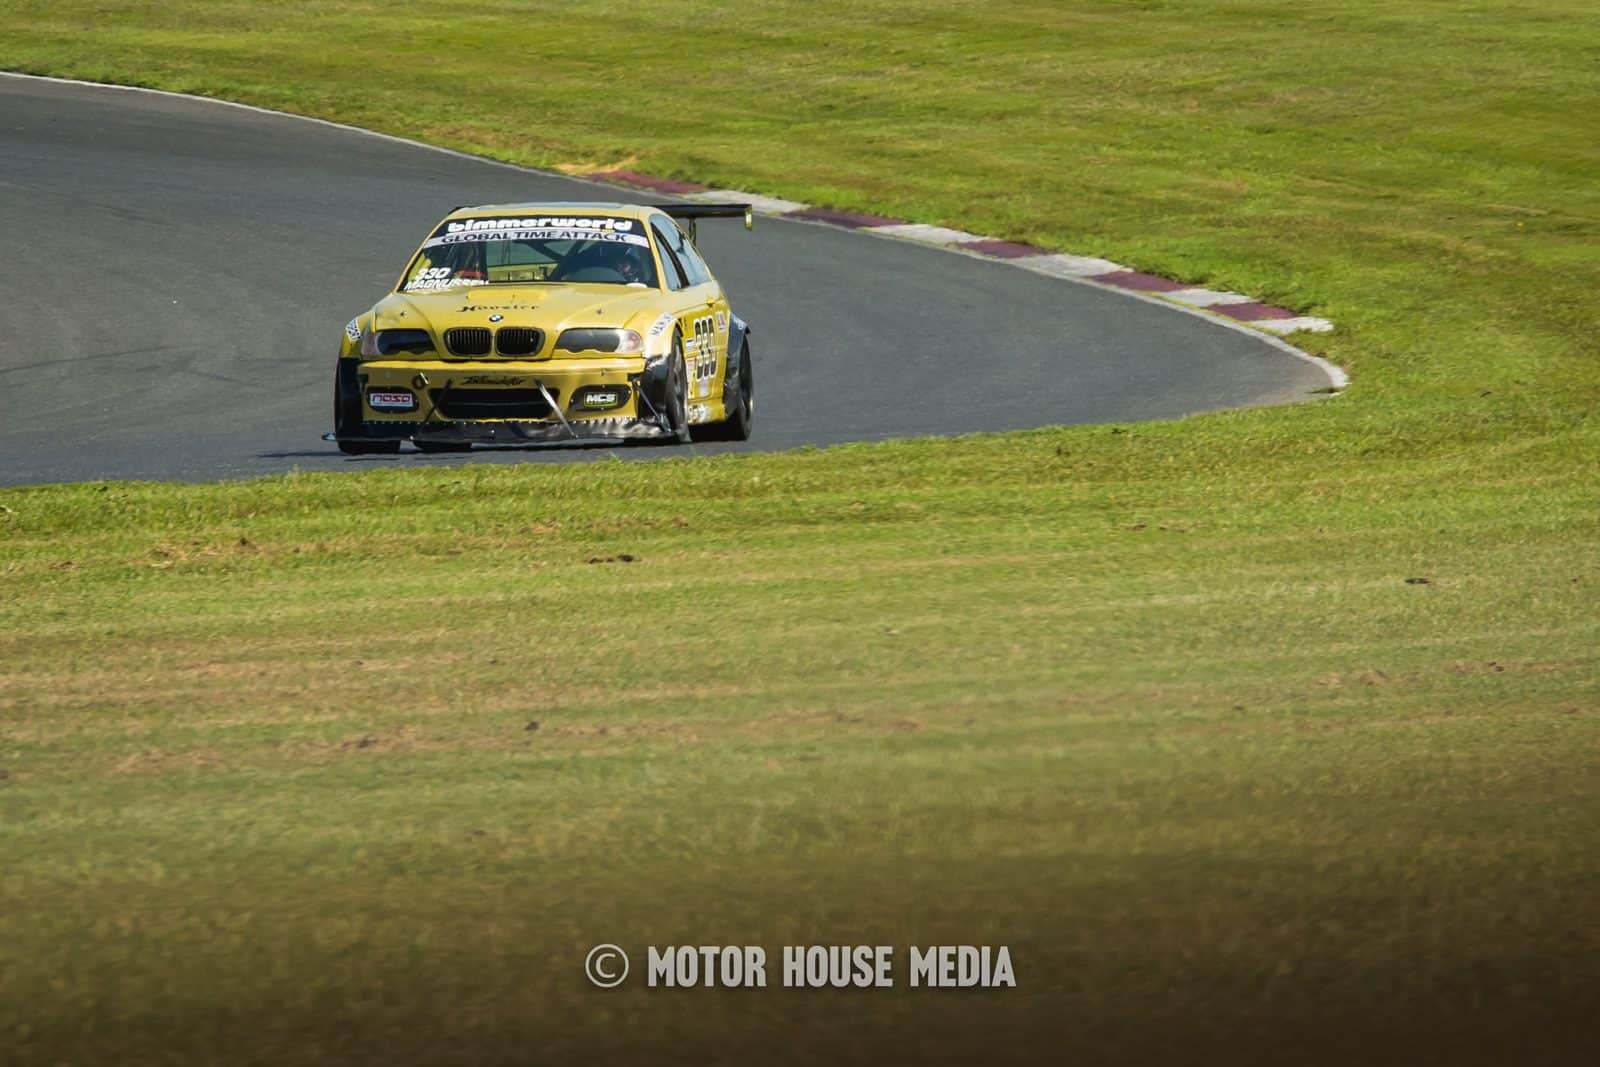 Global Time Attack BMW at NJMP